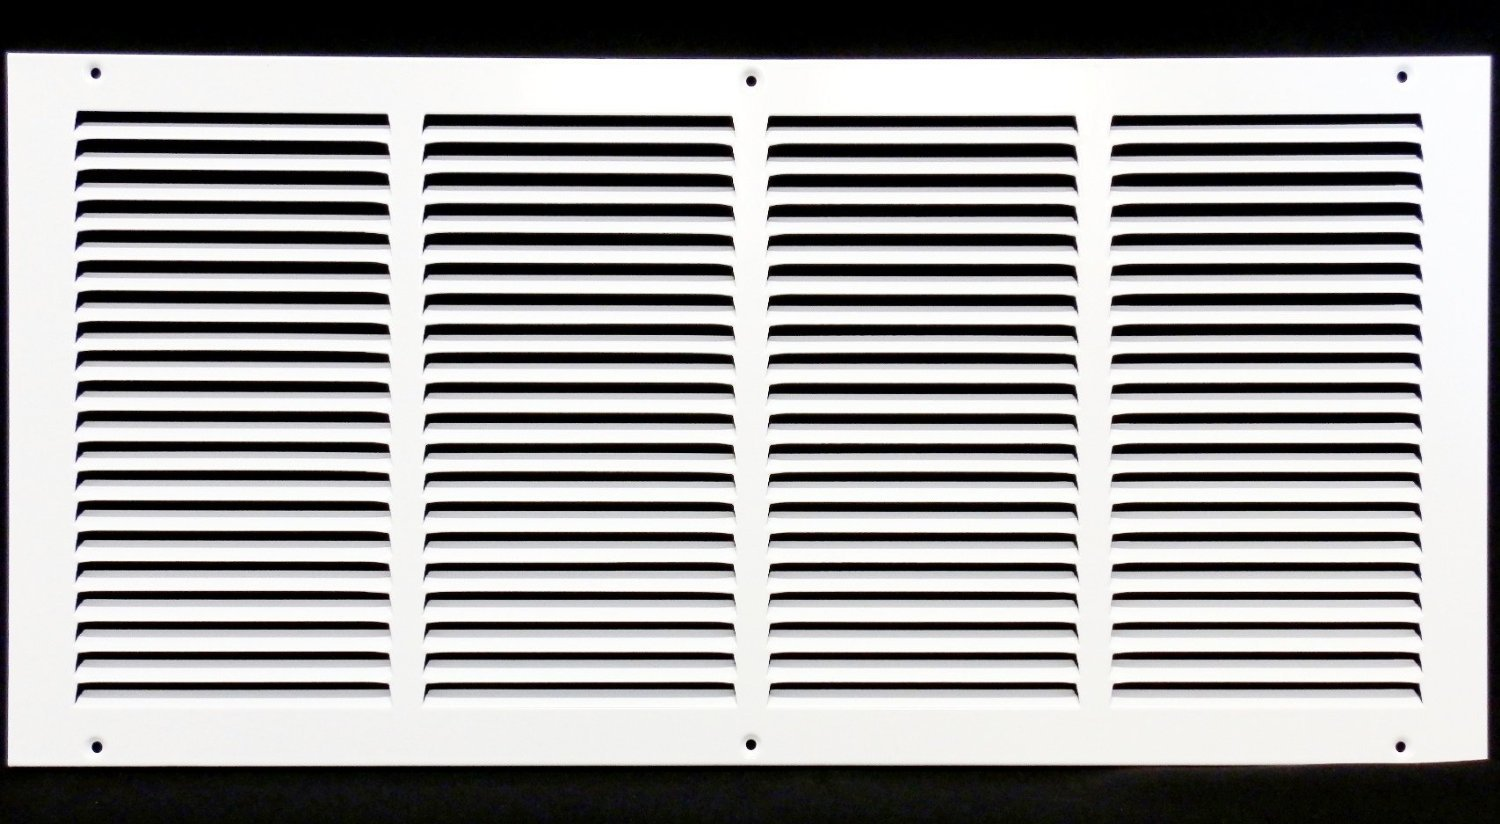 24''w X 14''h Steel Return Air Grilles - Sidewall and Cieling - HVAC DUCT COVER - White [Outer Dimensions: 25.75''w X 15.75''h]